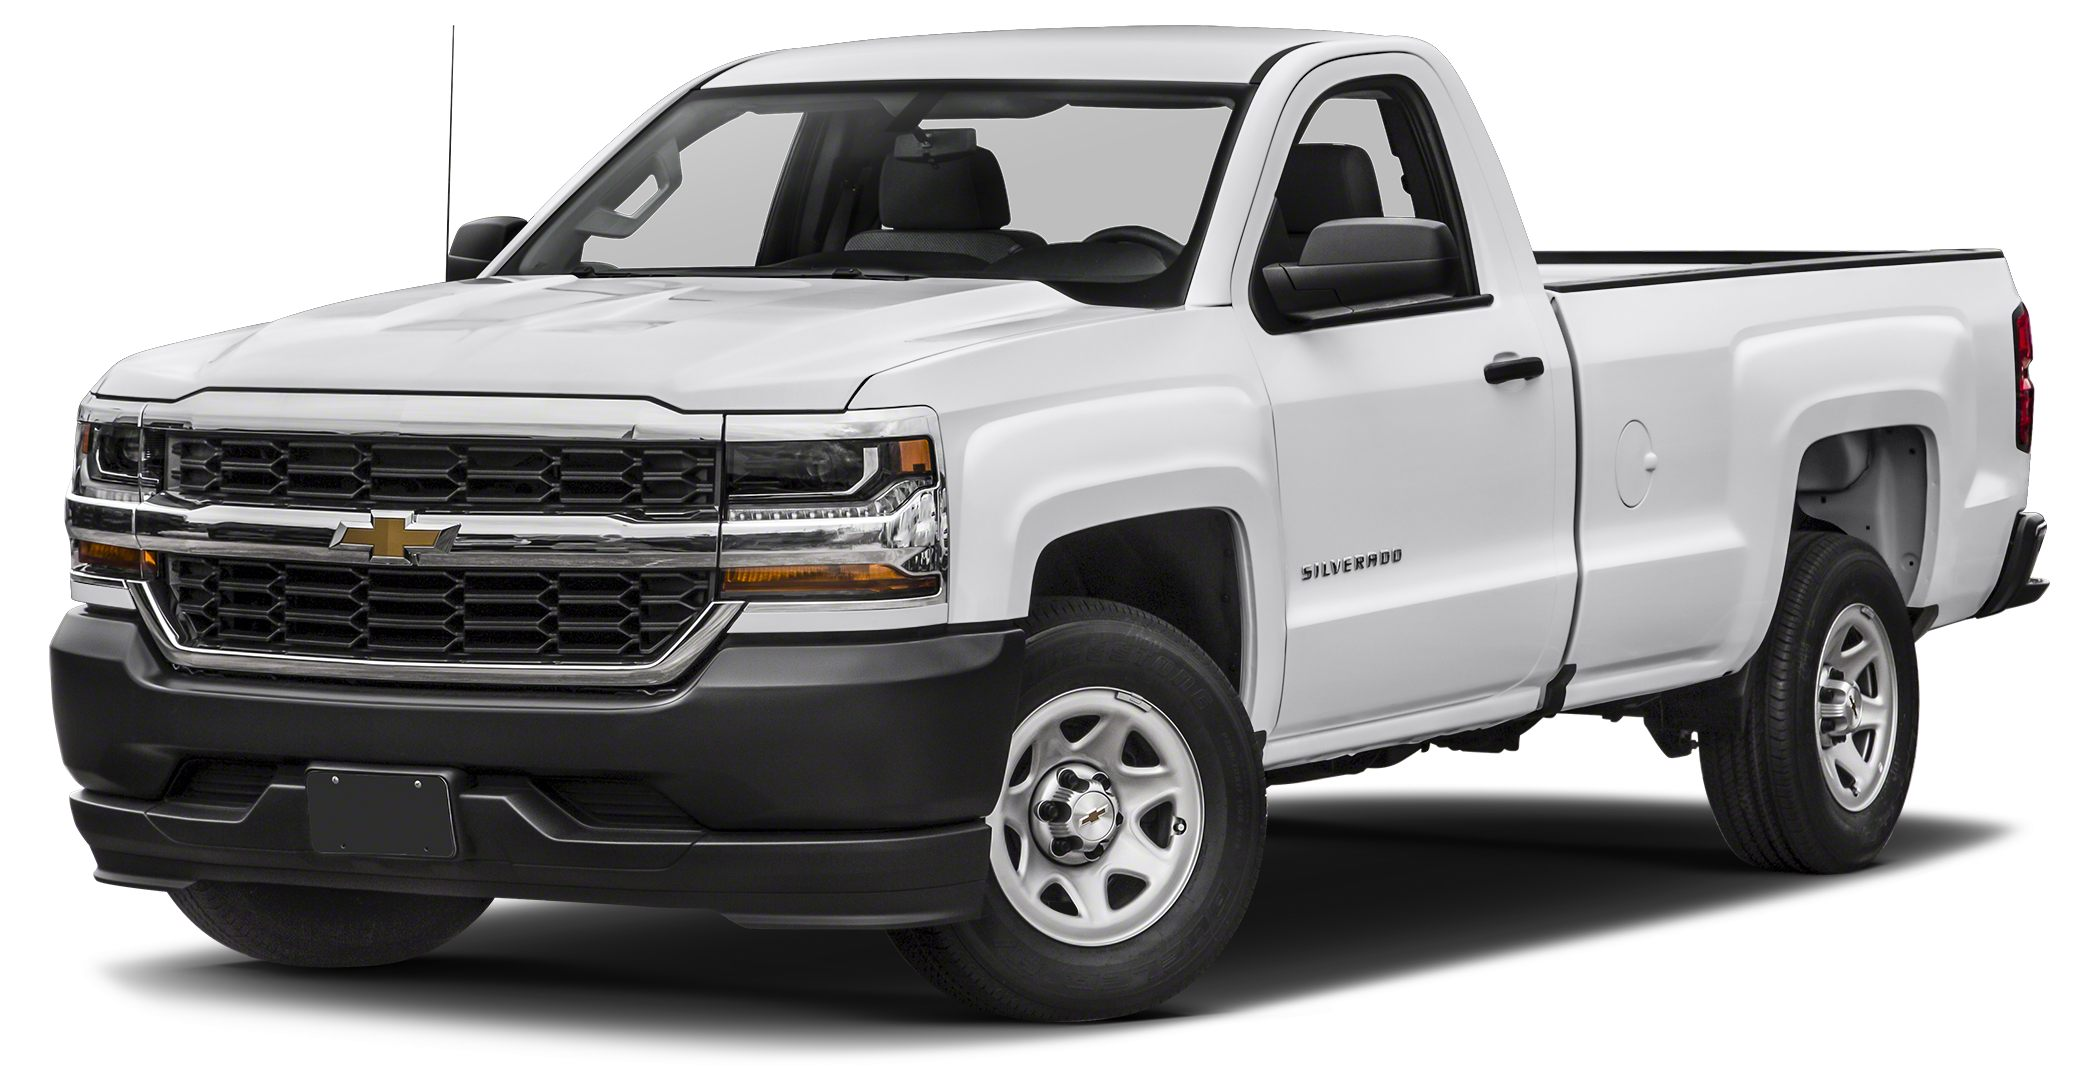 2018 Chevrolet Silverado 1500 WT Summit White 2018 Chevrolet Silverado 1500 WT RWD 6-Speed Automat